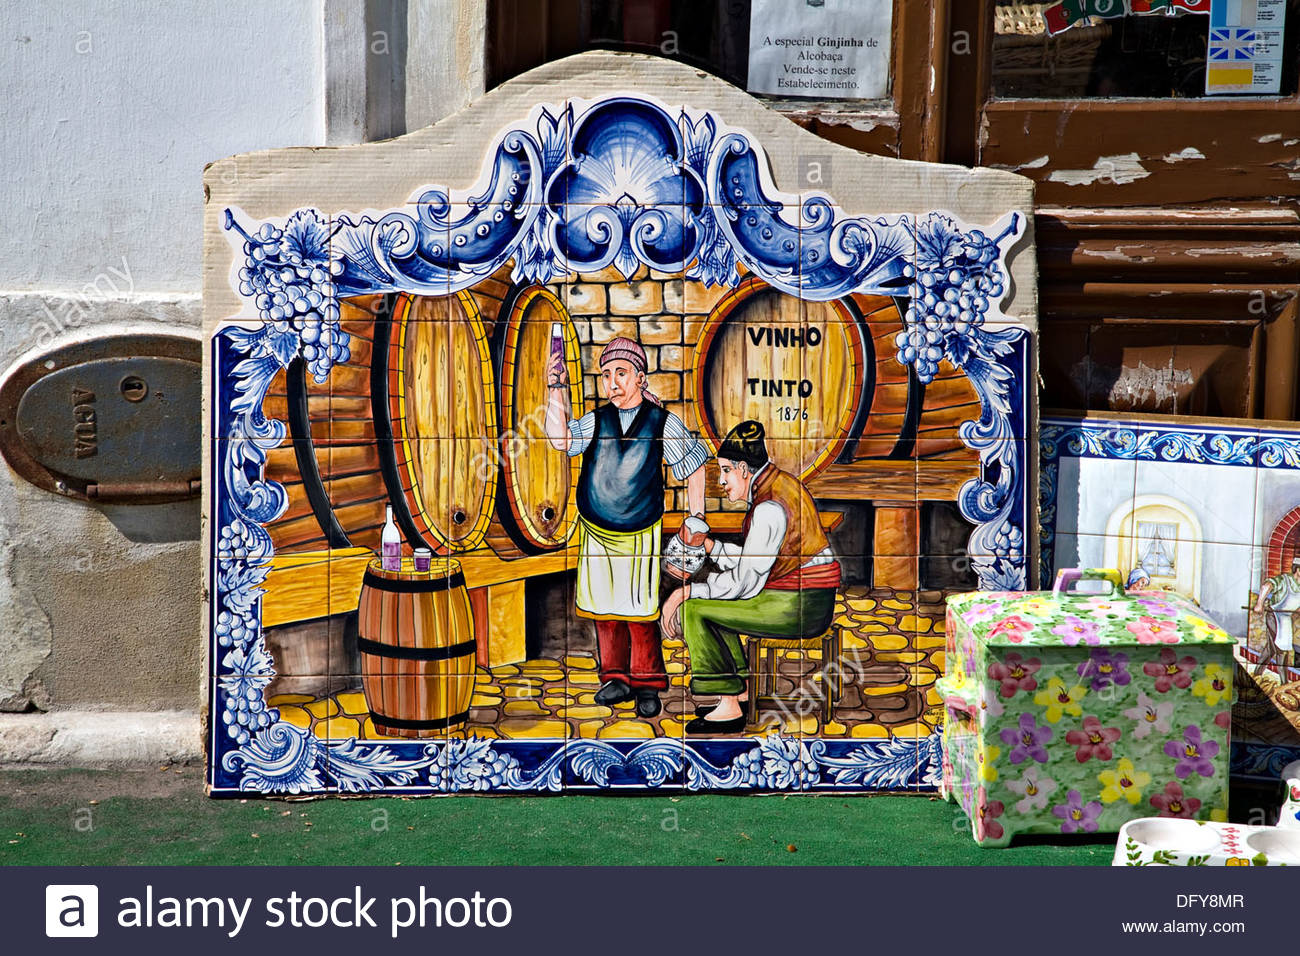 mexican kitchen colors on of authentic handcrafted and hand portuguese culture of hand painted tiles depicting wine cellar alcobaa portugal stock image